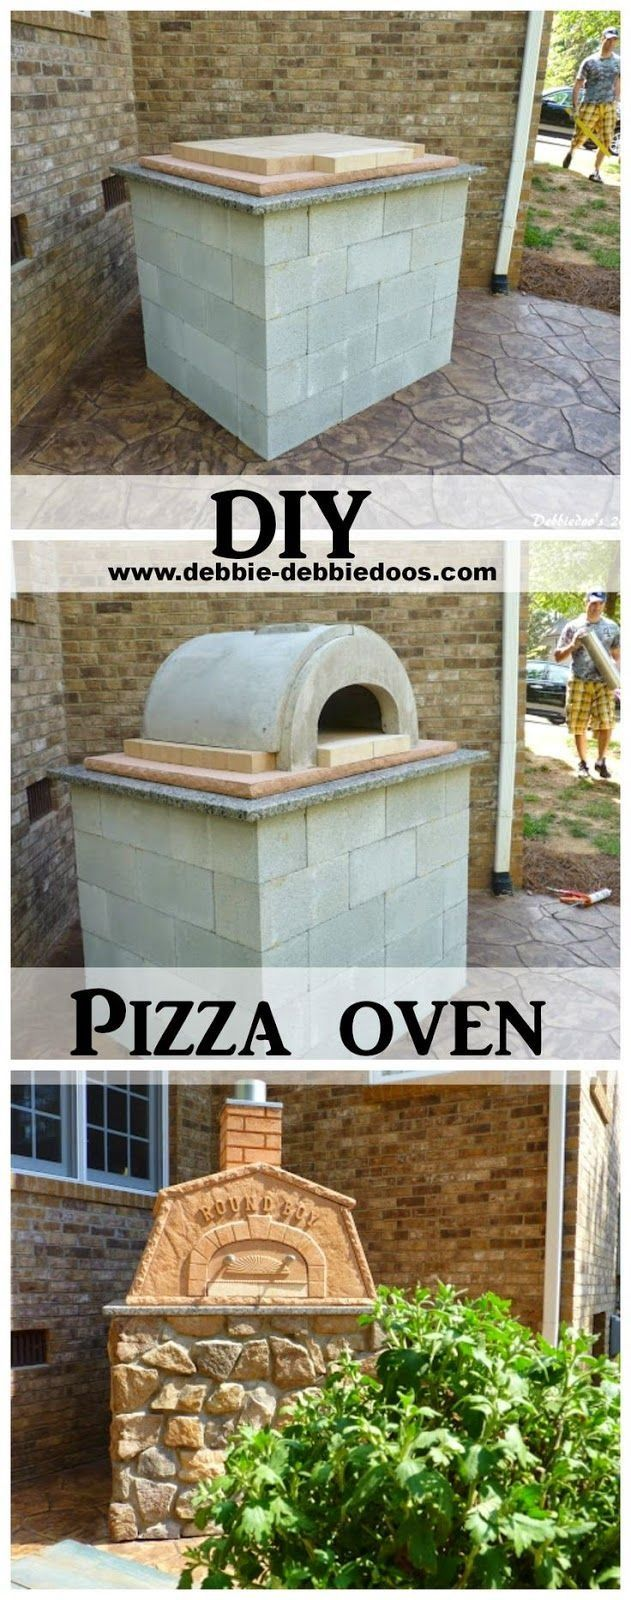 How fun to grill your own wood fire pizza on your patio or deck this summer! Check out the tutorial for a DIY pizza oven.